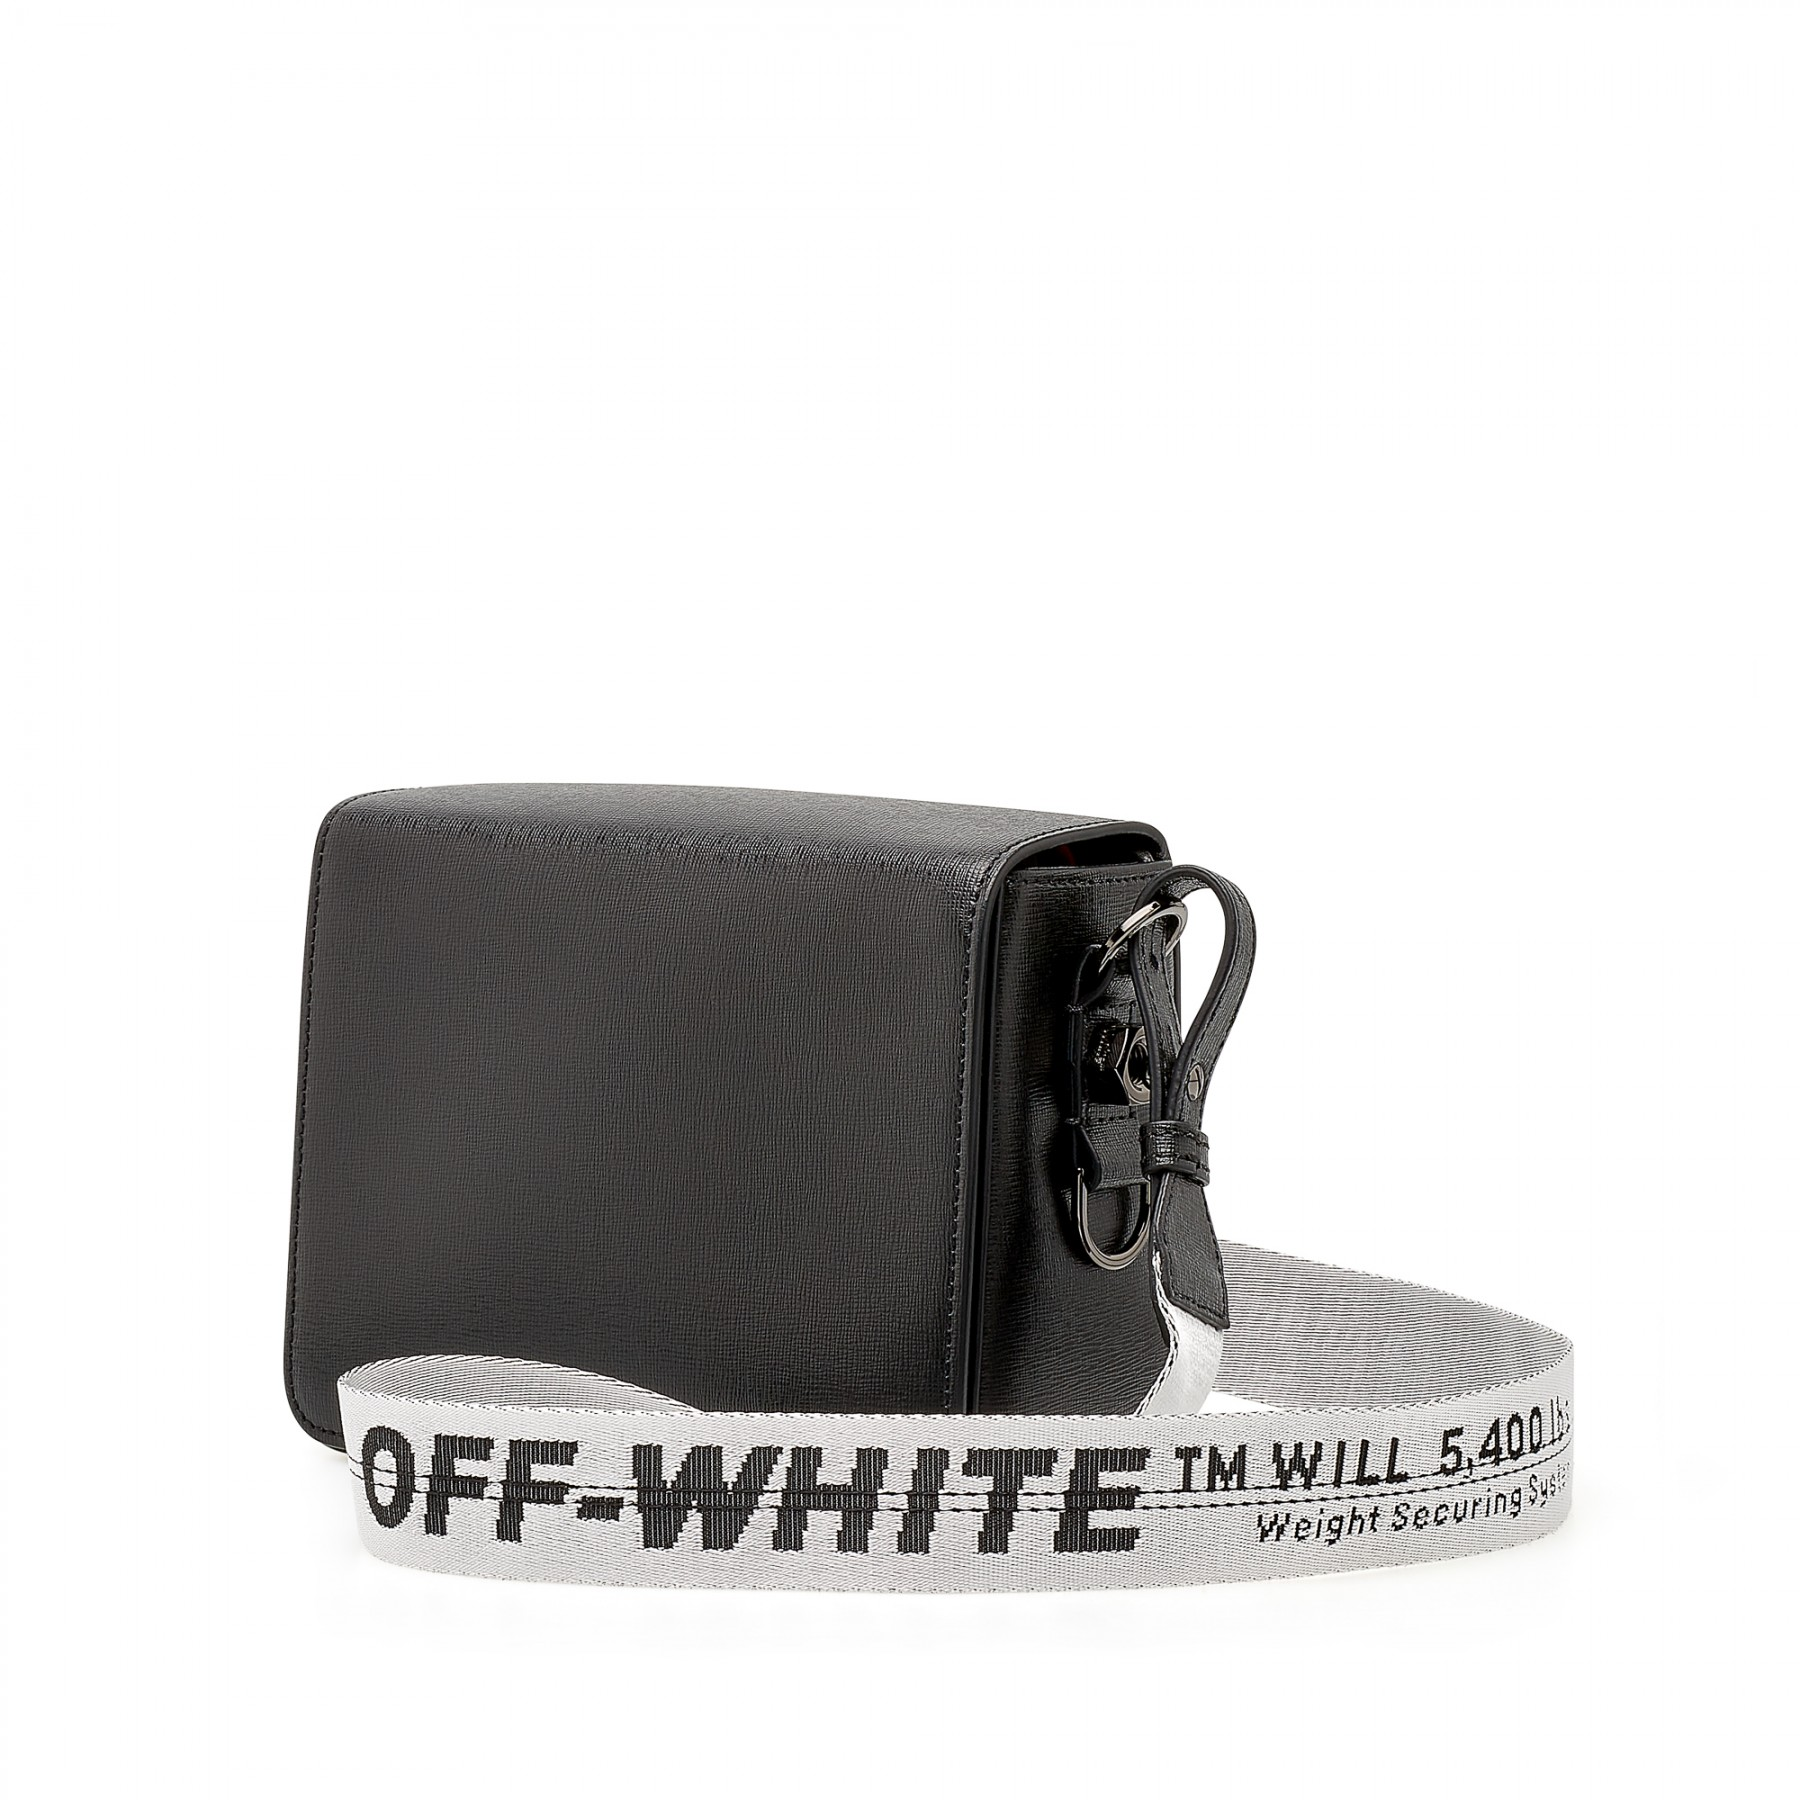 OfffWhite_LeatherBag_WhiteStripe_1